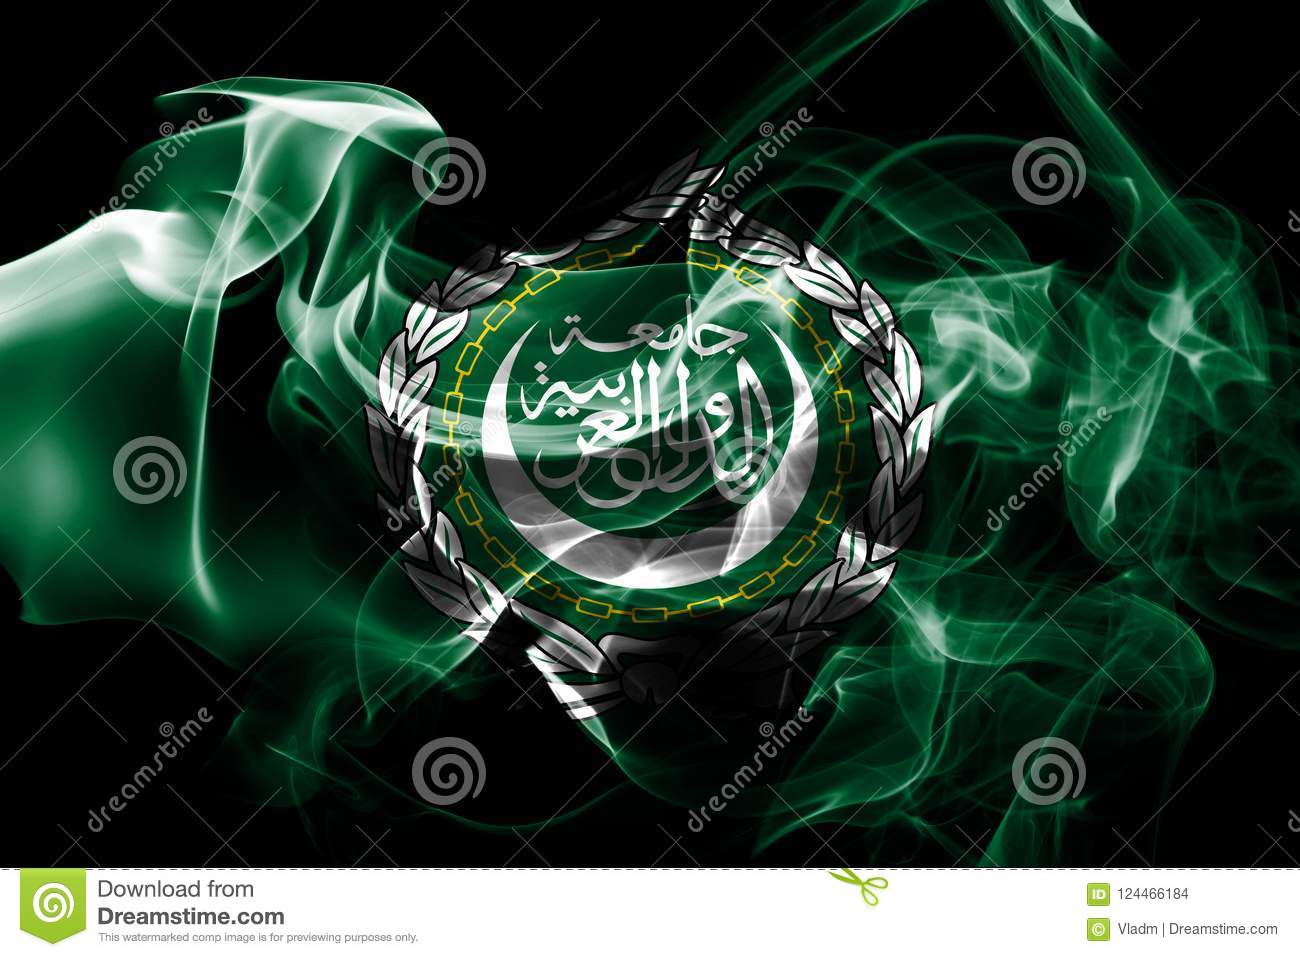 National flag of Arab League made from colored smoke isolated on black background